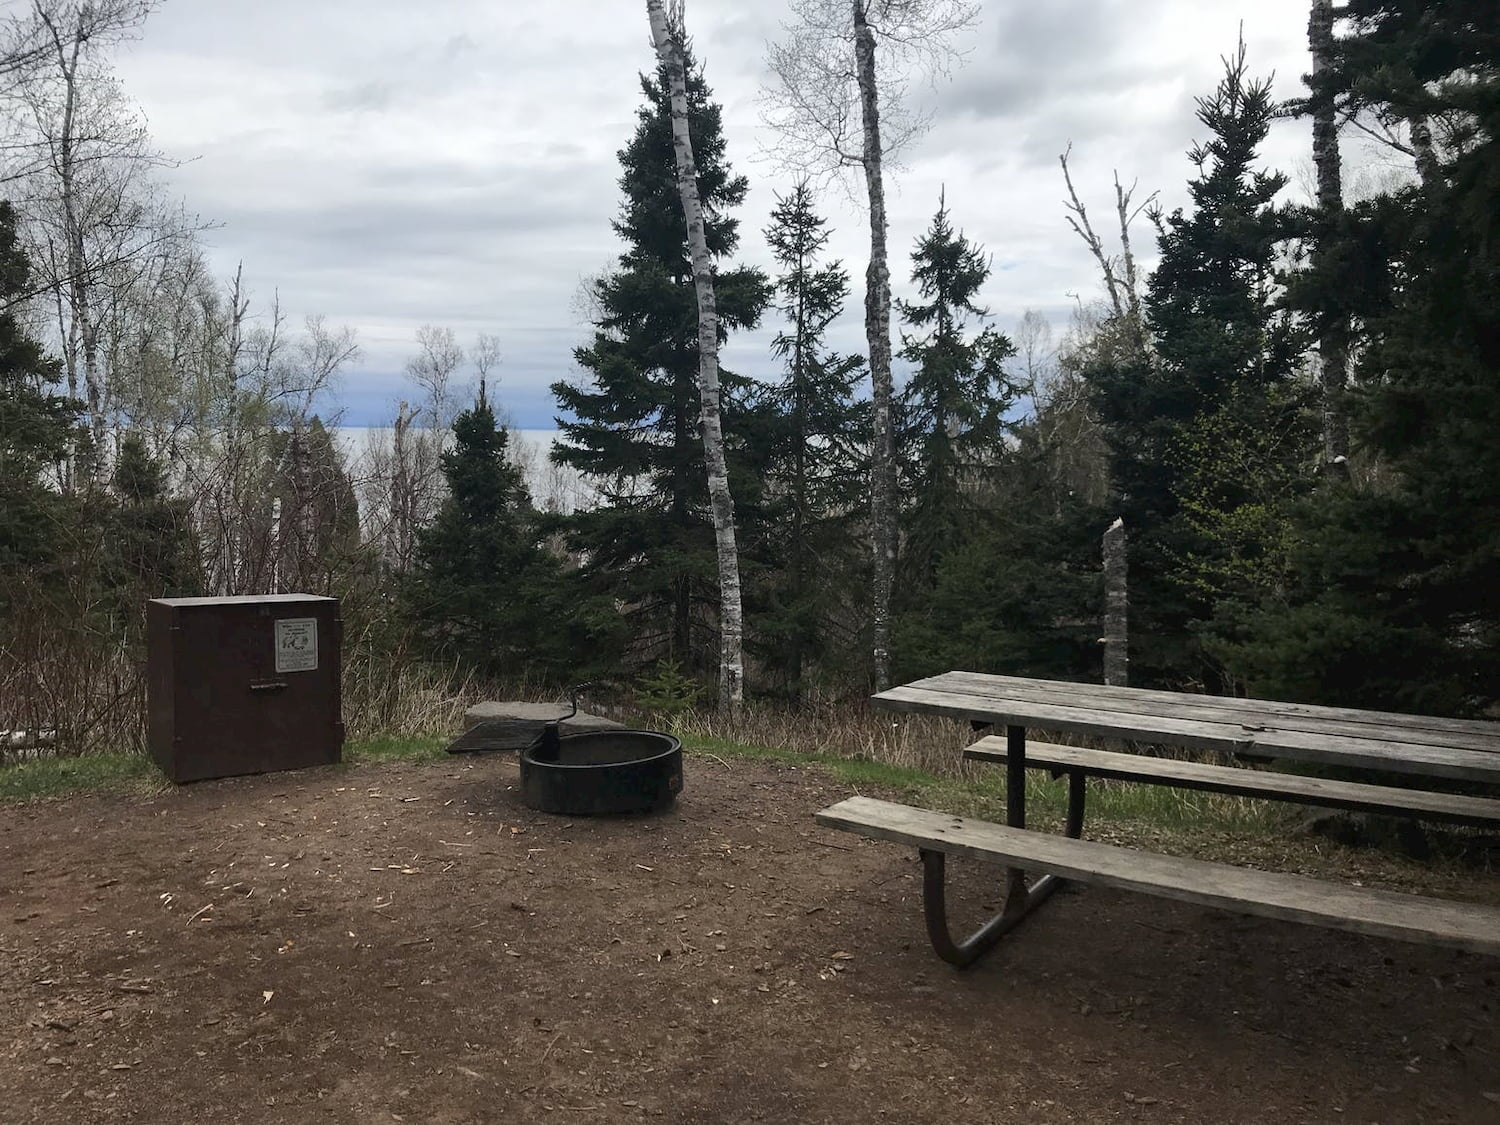 picnic bench, fire ring and bear box at campsite